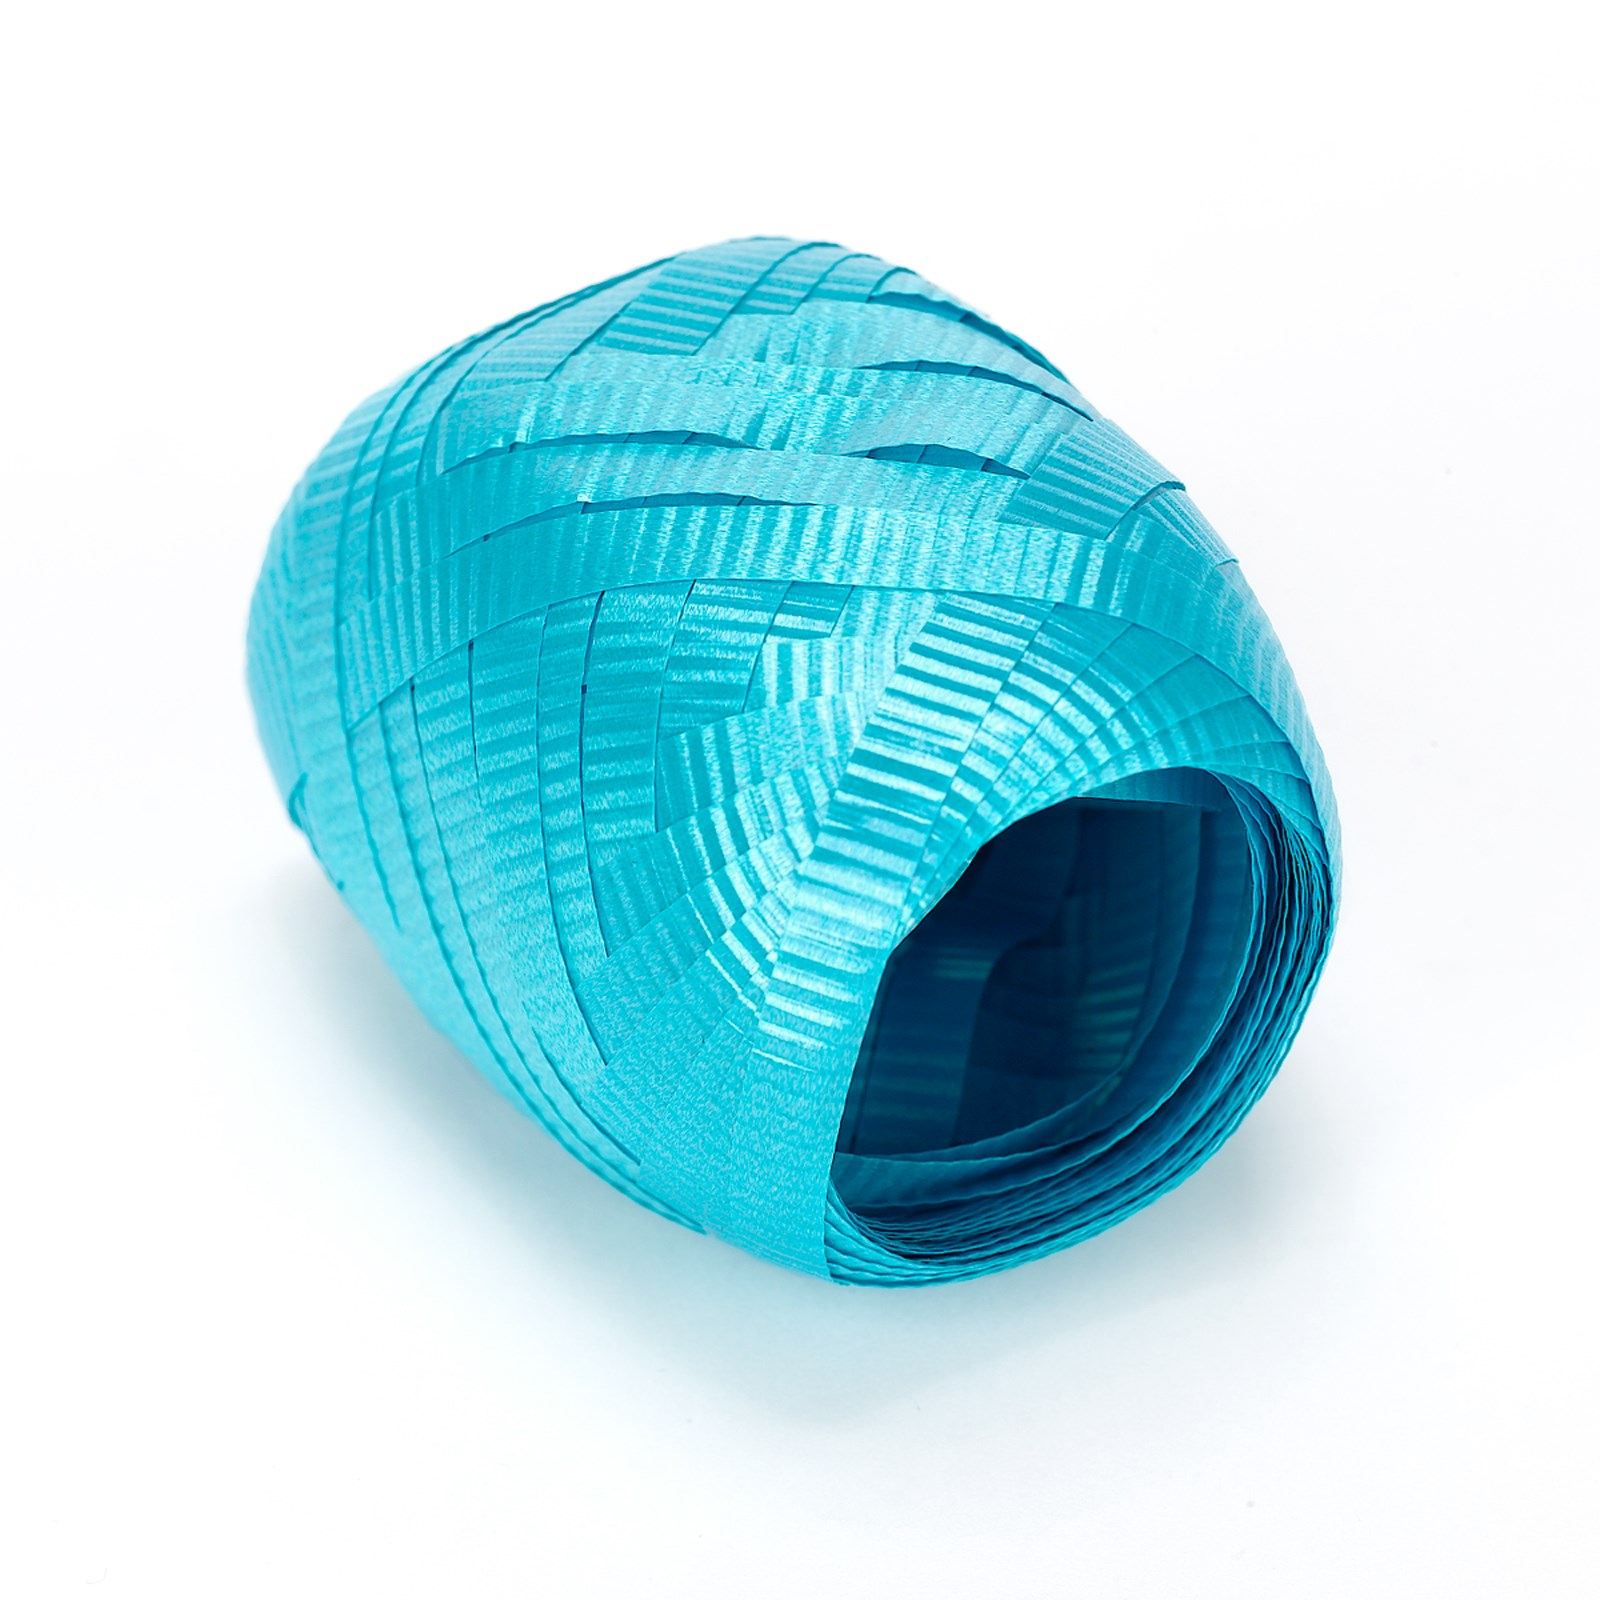 Image of Aqua Blue (Turquoise) Curling Ribbon